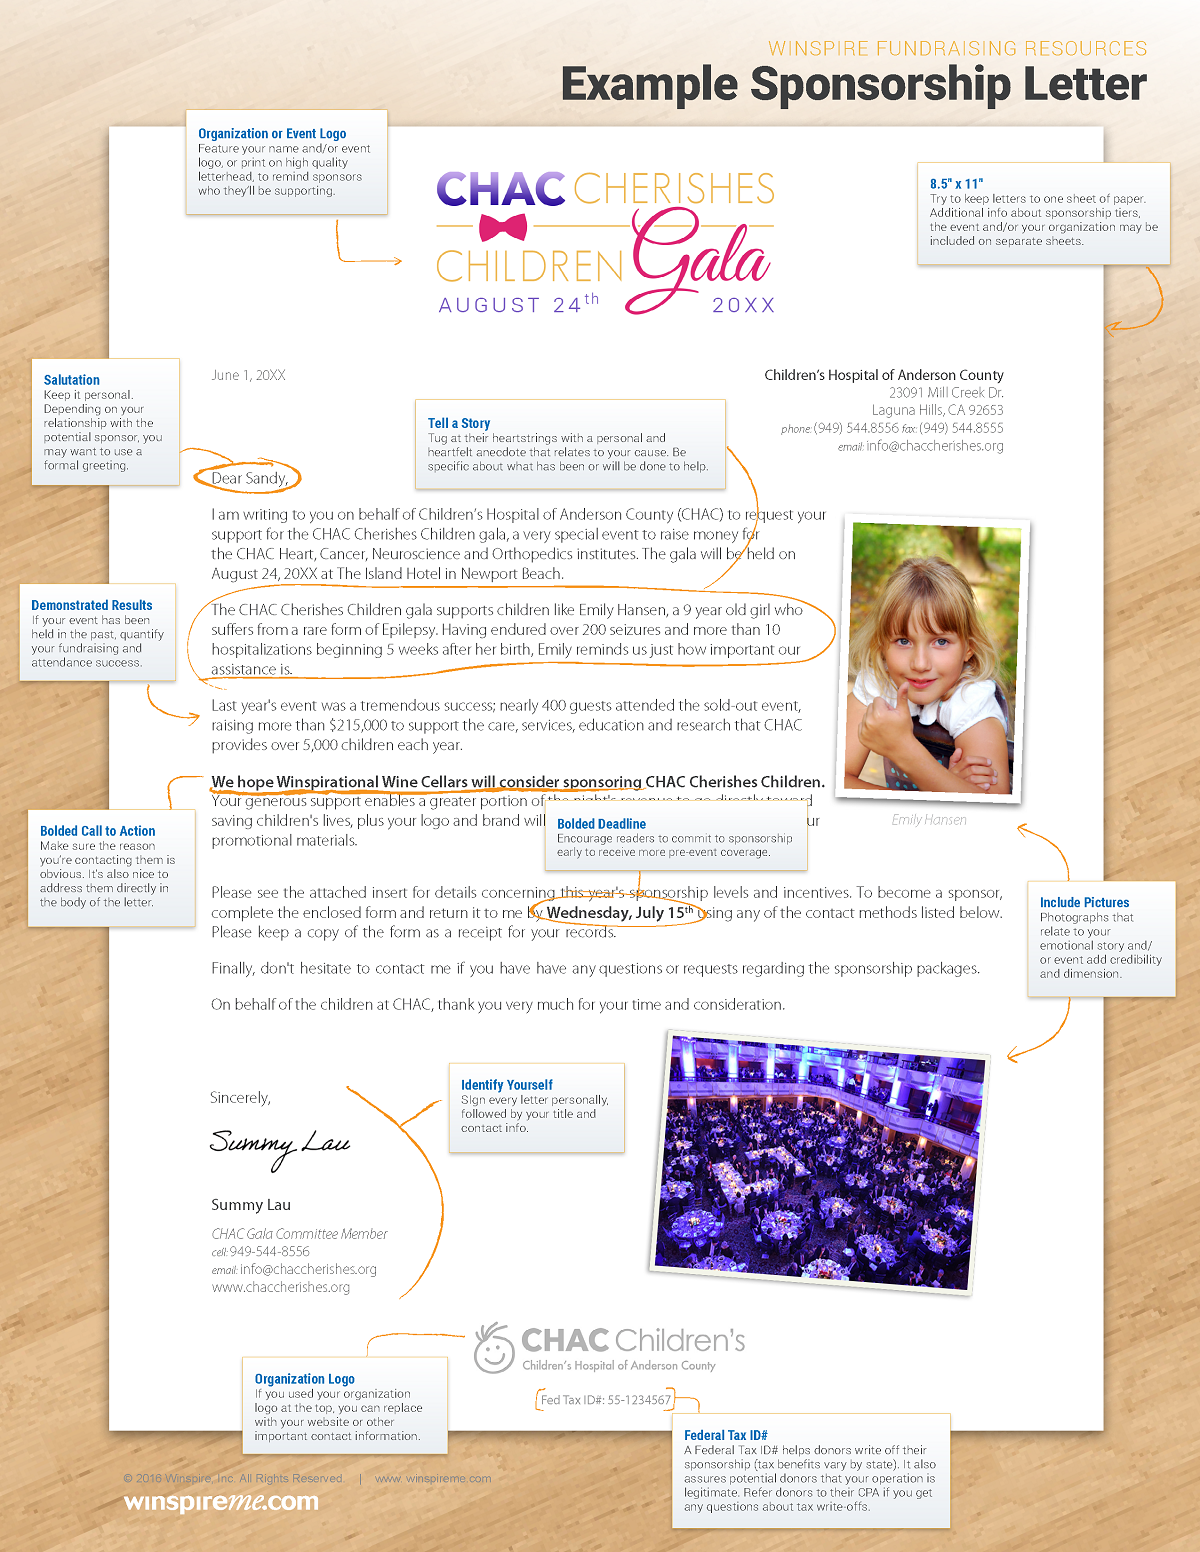 10 easy steps to effective sponsorship request letters free templates kit diagram sneak peek circle with pictureg spiritdancerdesigns Image collections